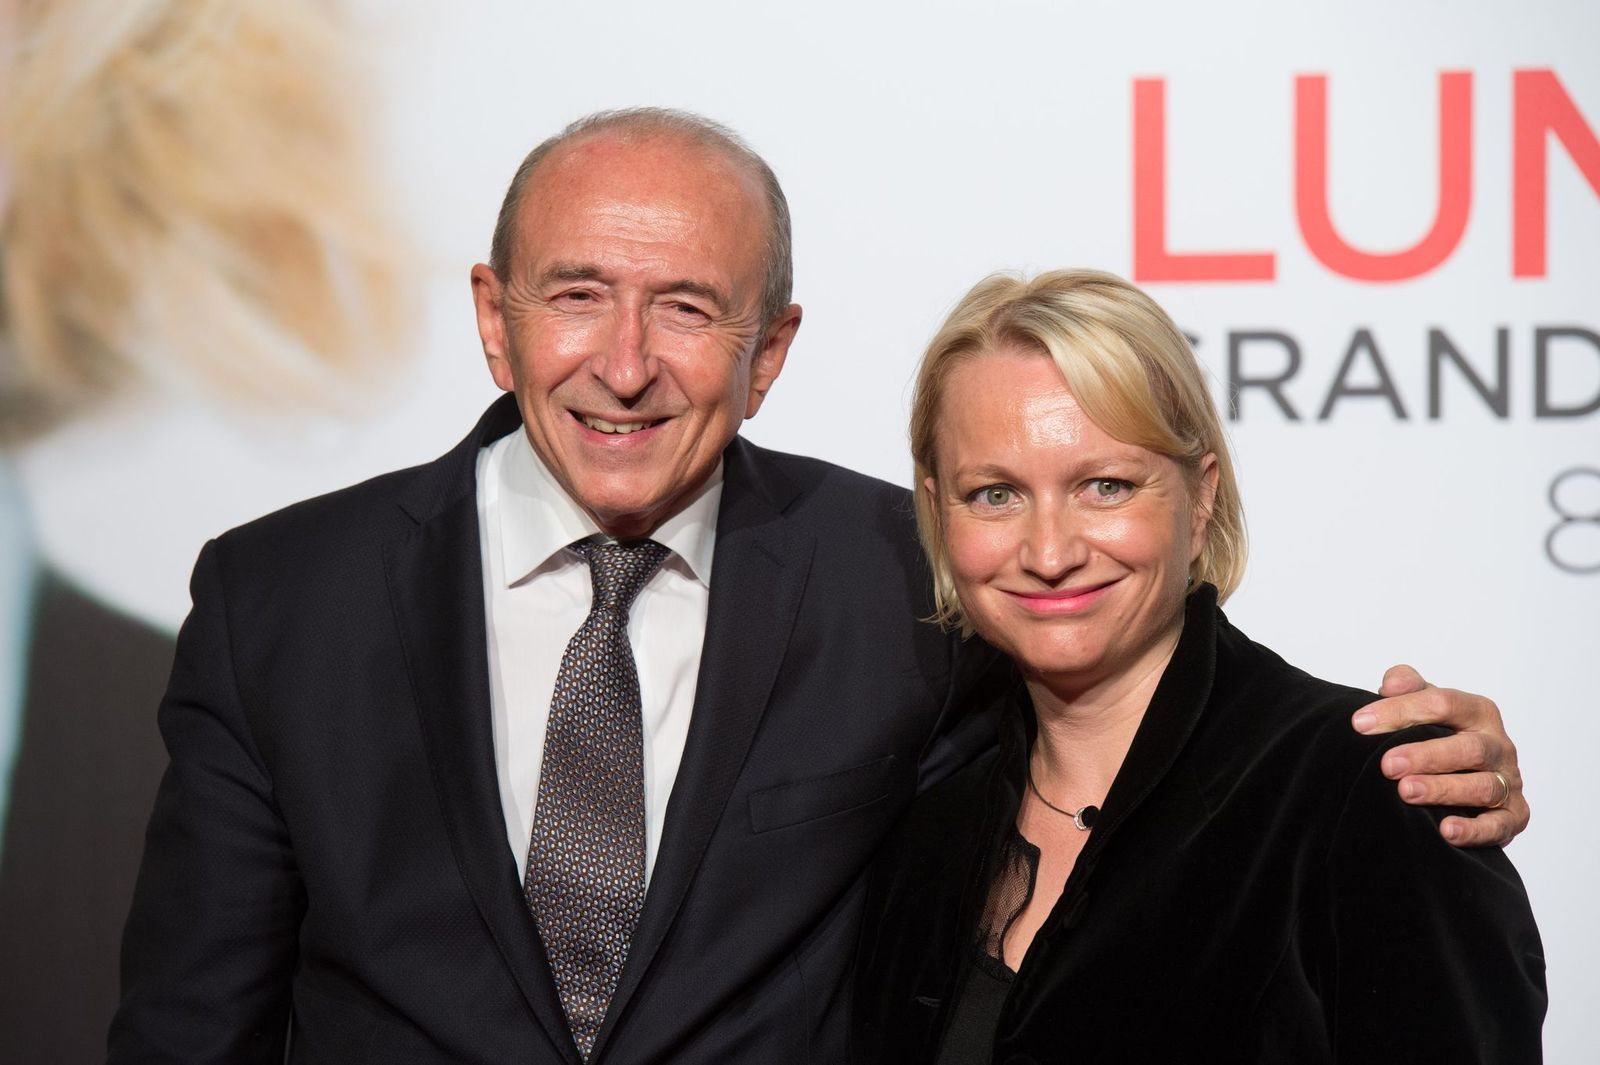 Gérard Collomb et sa femme Caroline Rougé | Photo : Getty Images